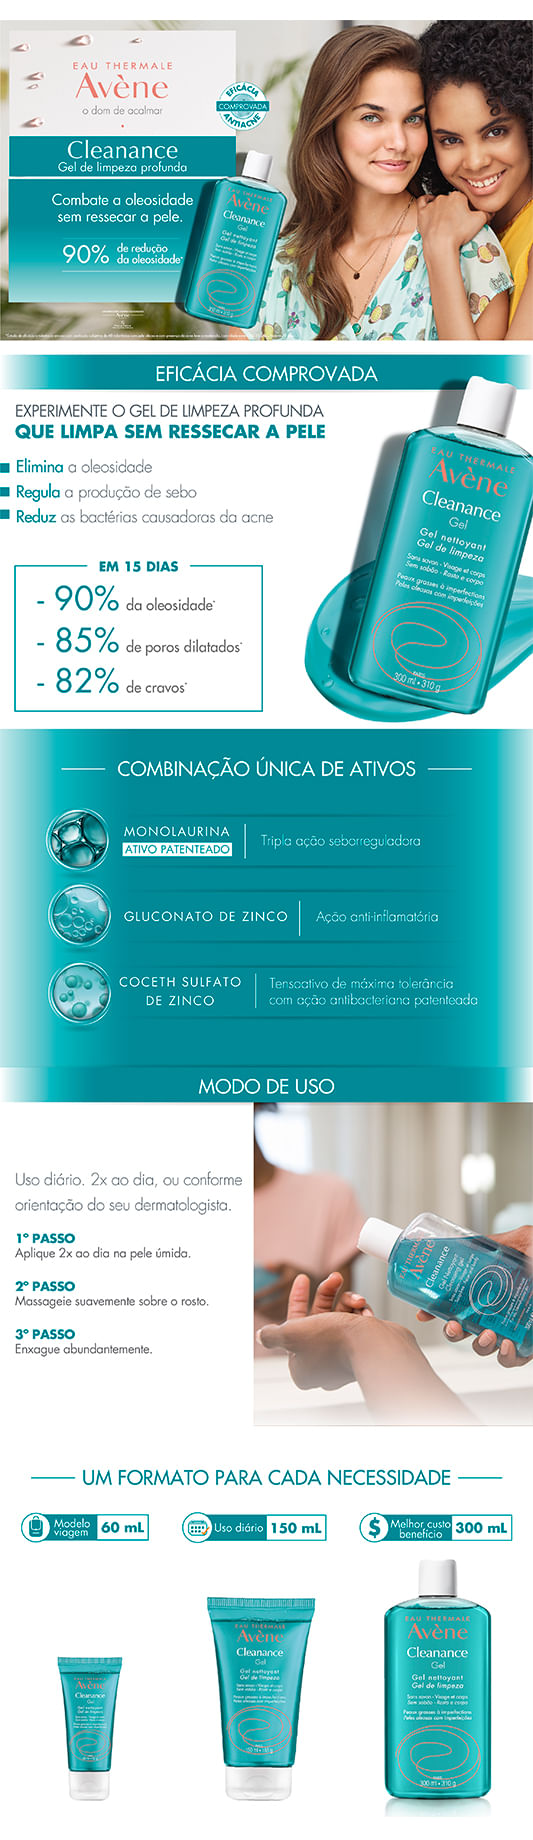 Gel de Limpeza Facial Avène - Cleanance Gel